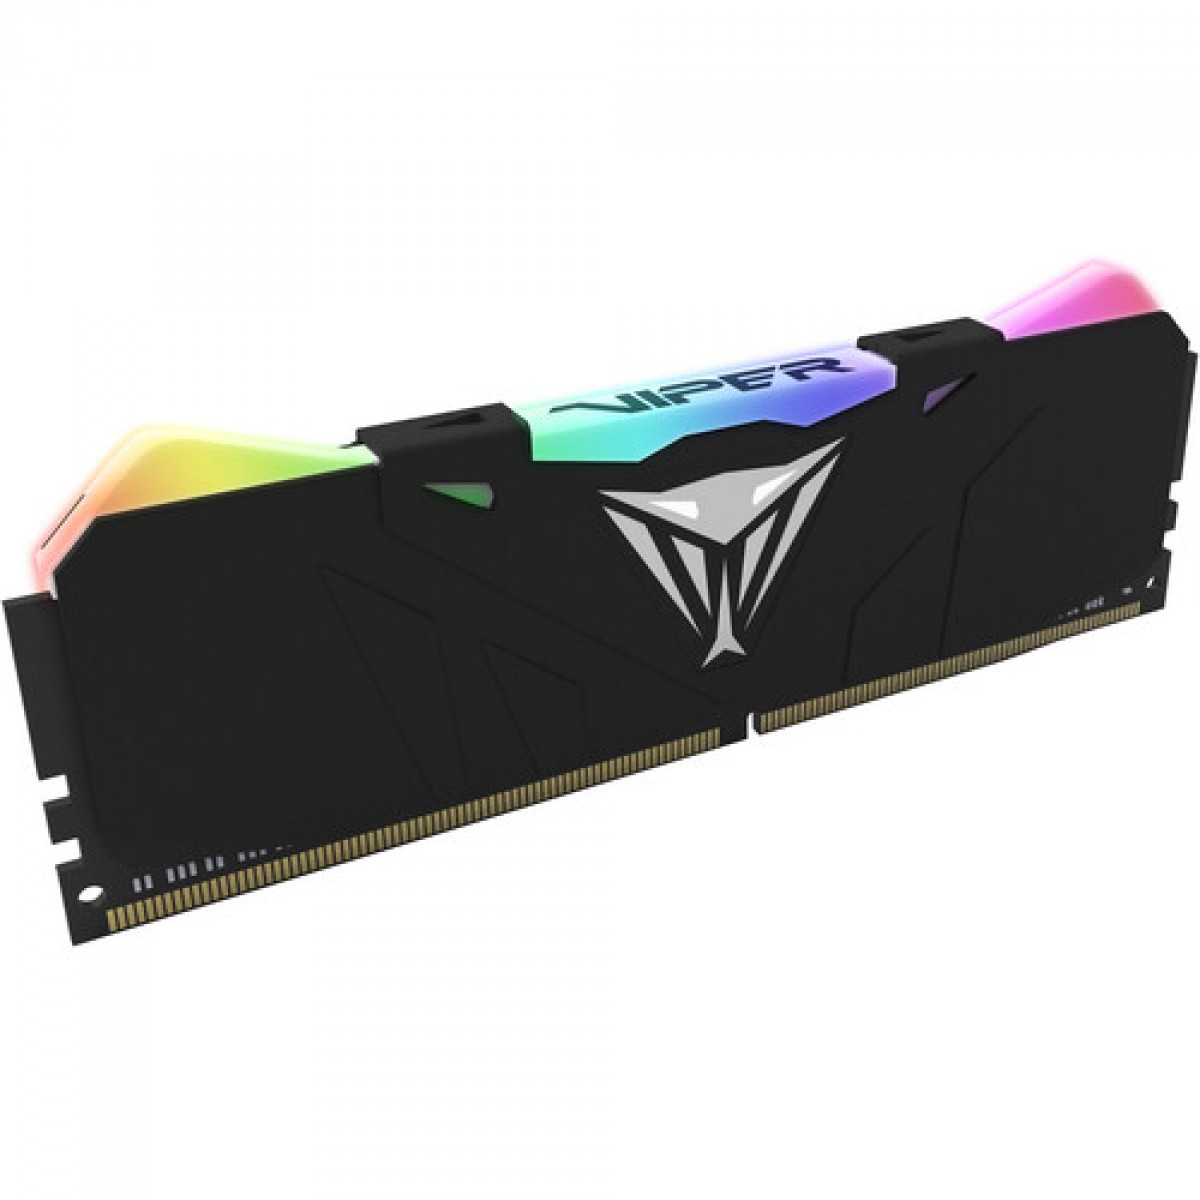 Memória DDR4 Patriot Viper RGB Series, 16GB (1x16GB) 3600MHz, Black, PVR416G360C8